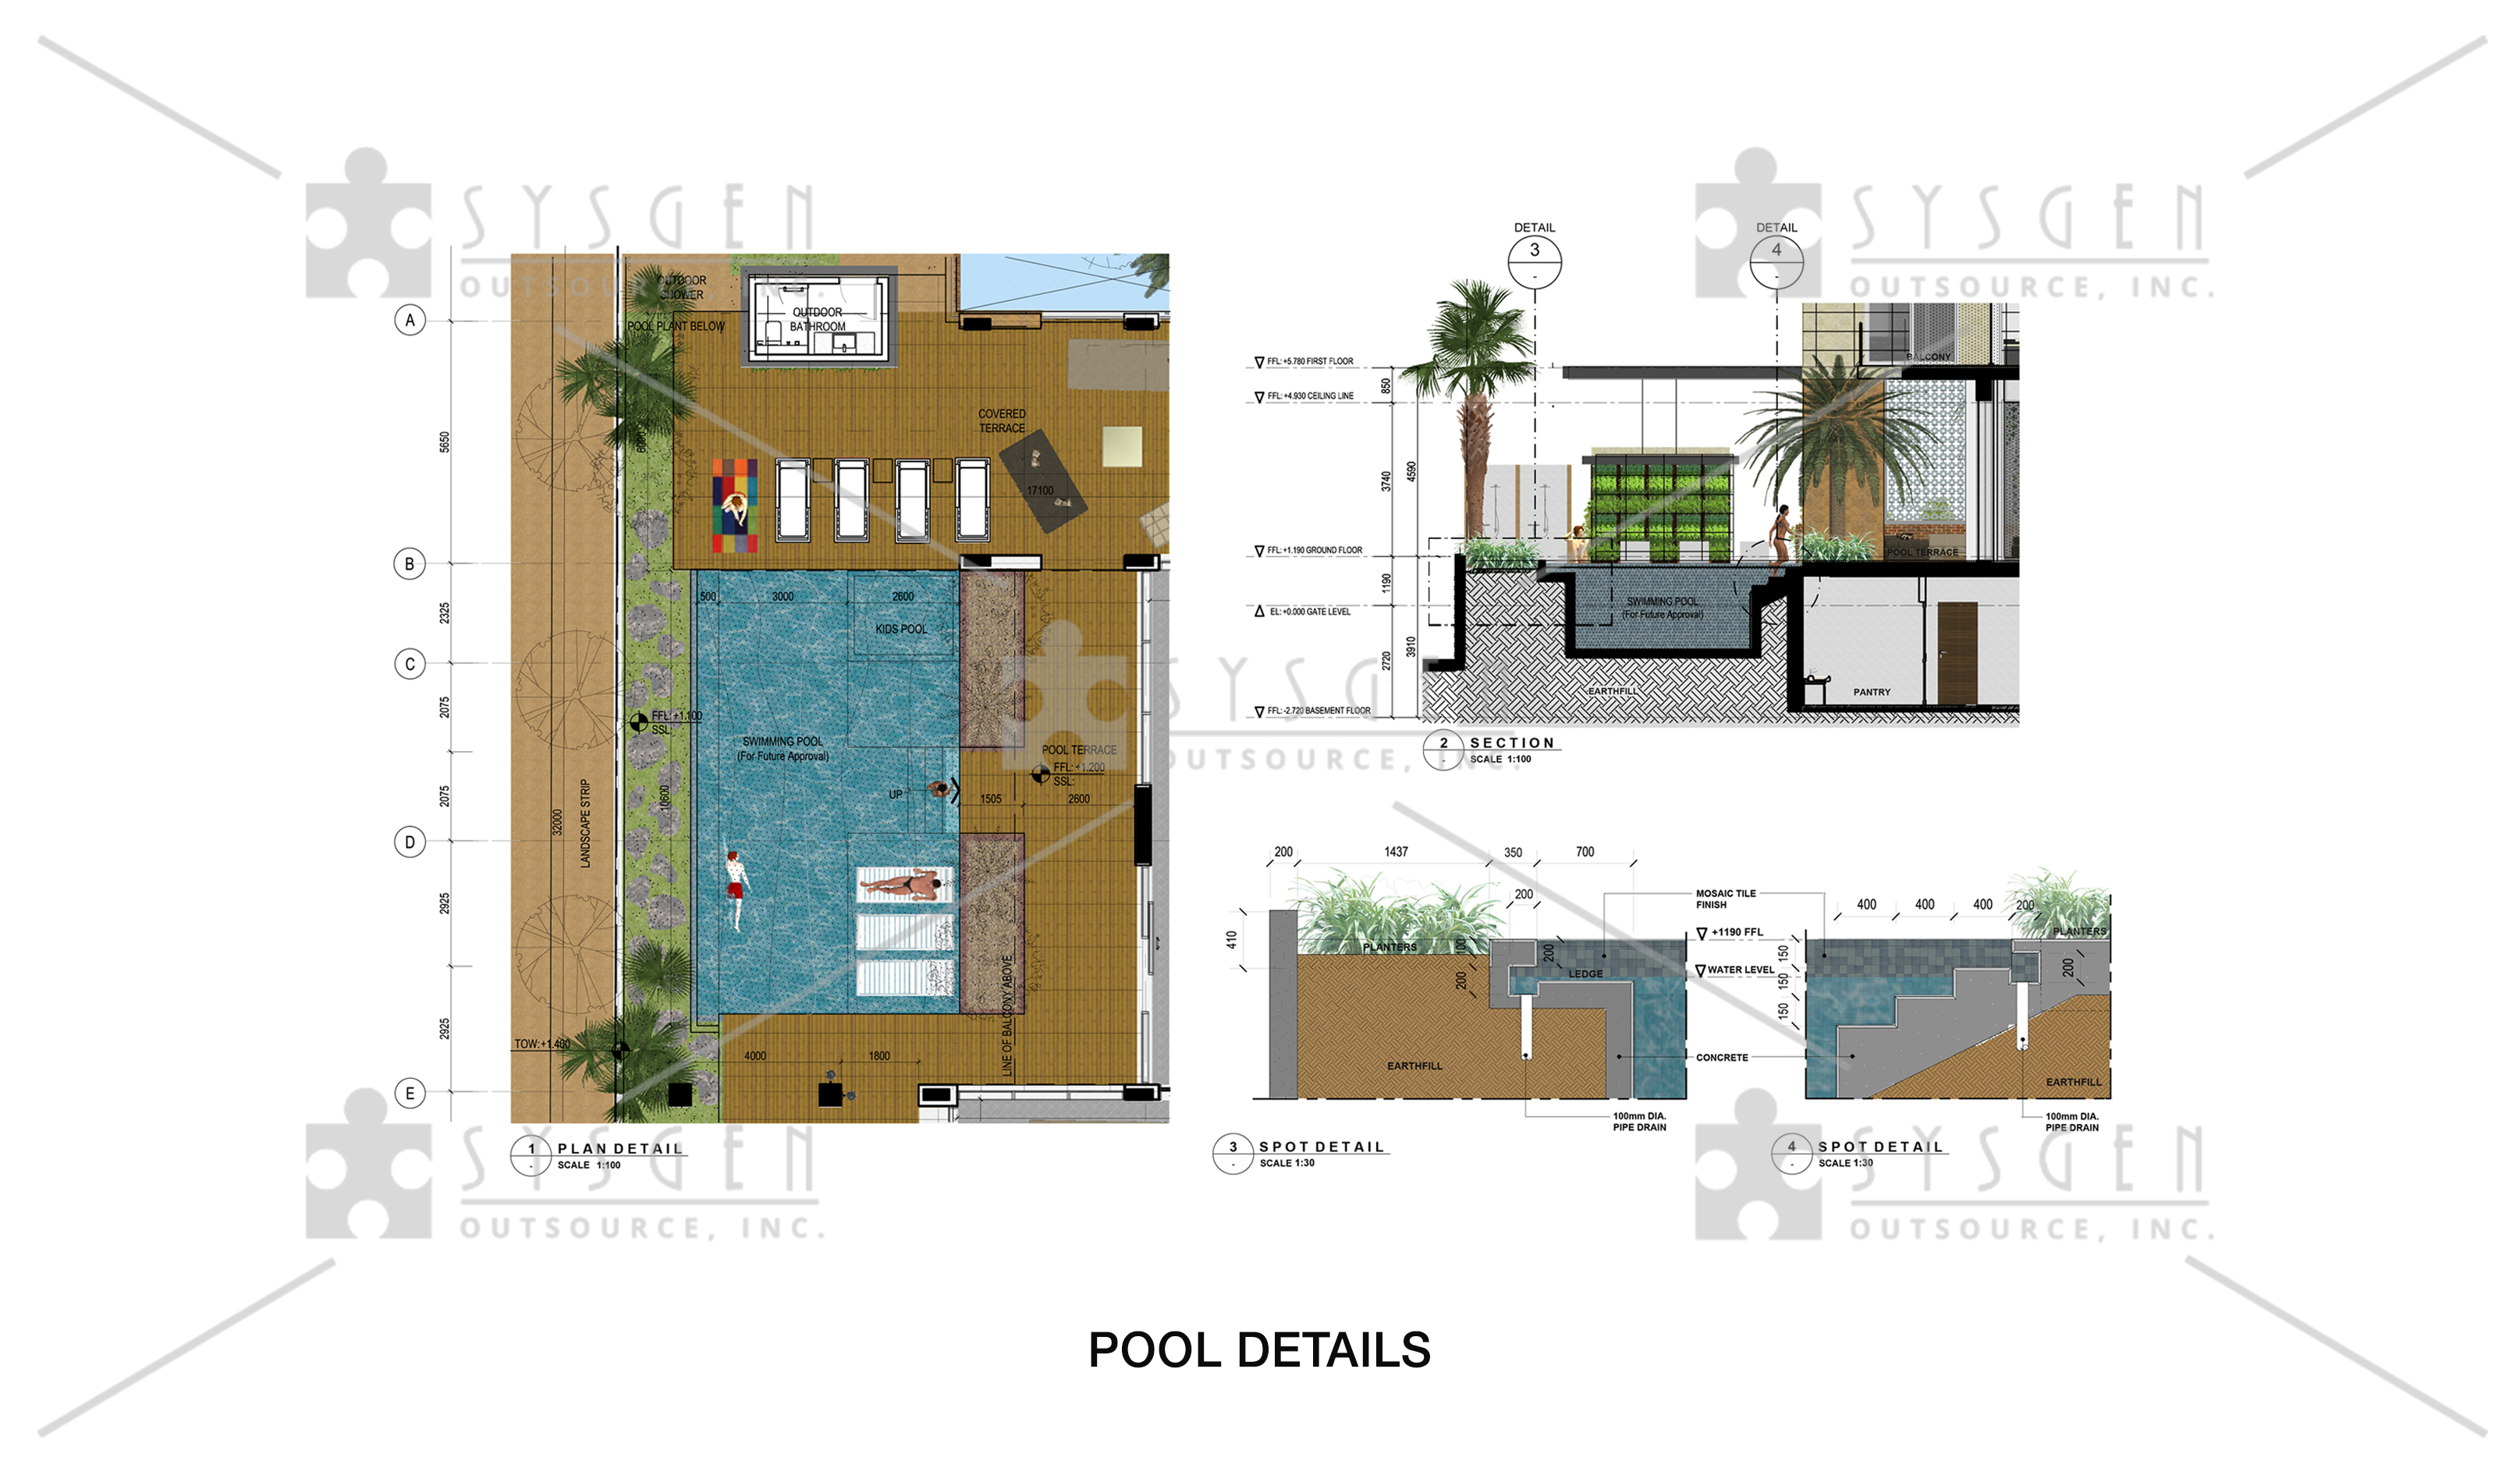 sysgen-outsource-cad-outsourcing-services-sketch-up-residential_villa-jm13